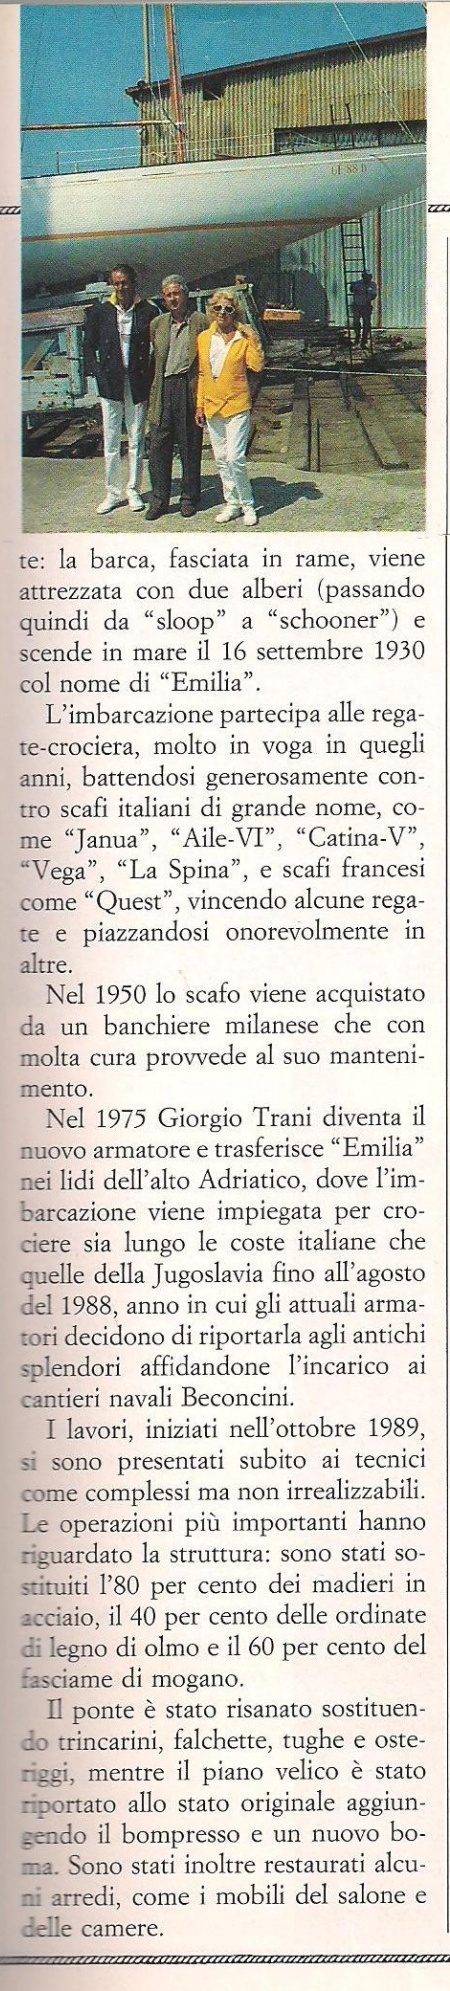 1990 10 PRESS EMILIA Yacht Digest (02).jpg